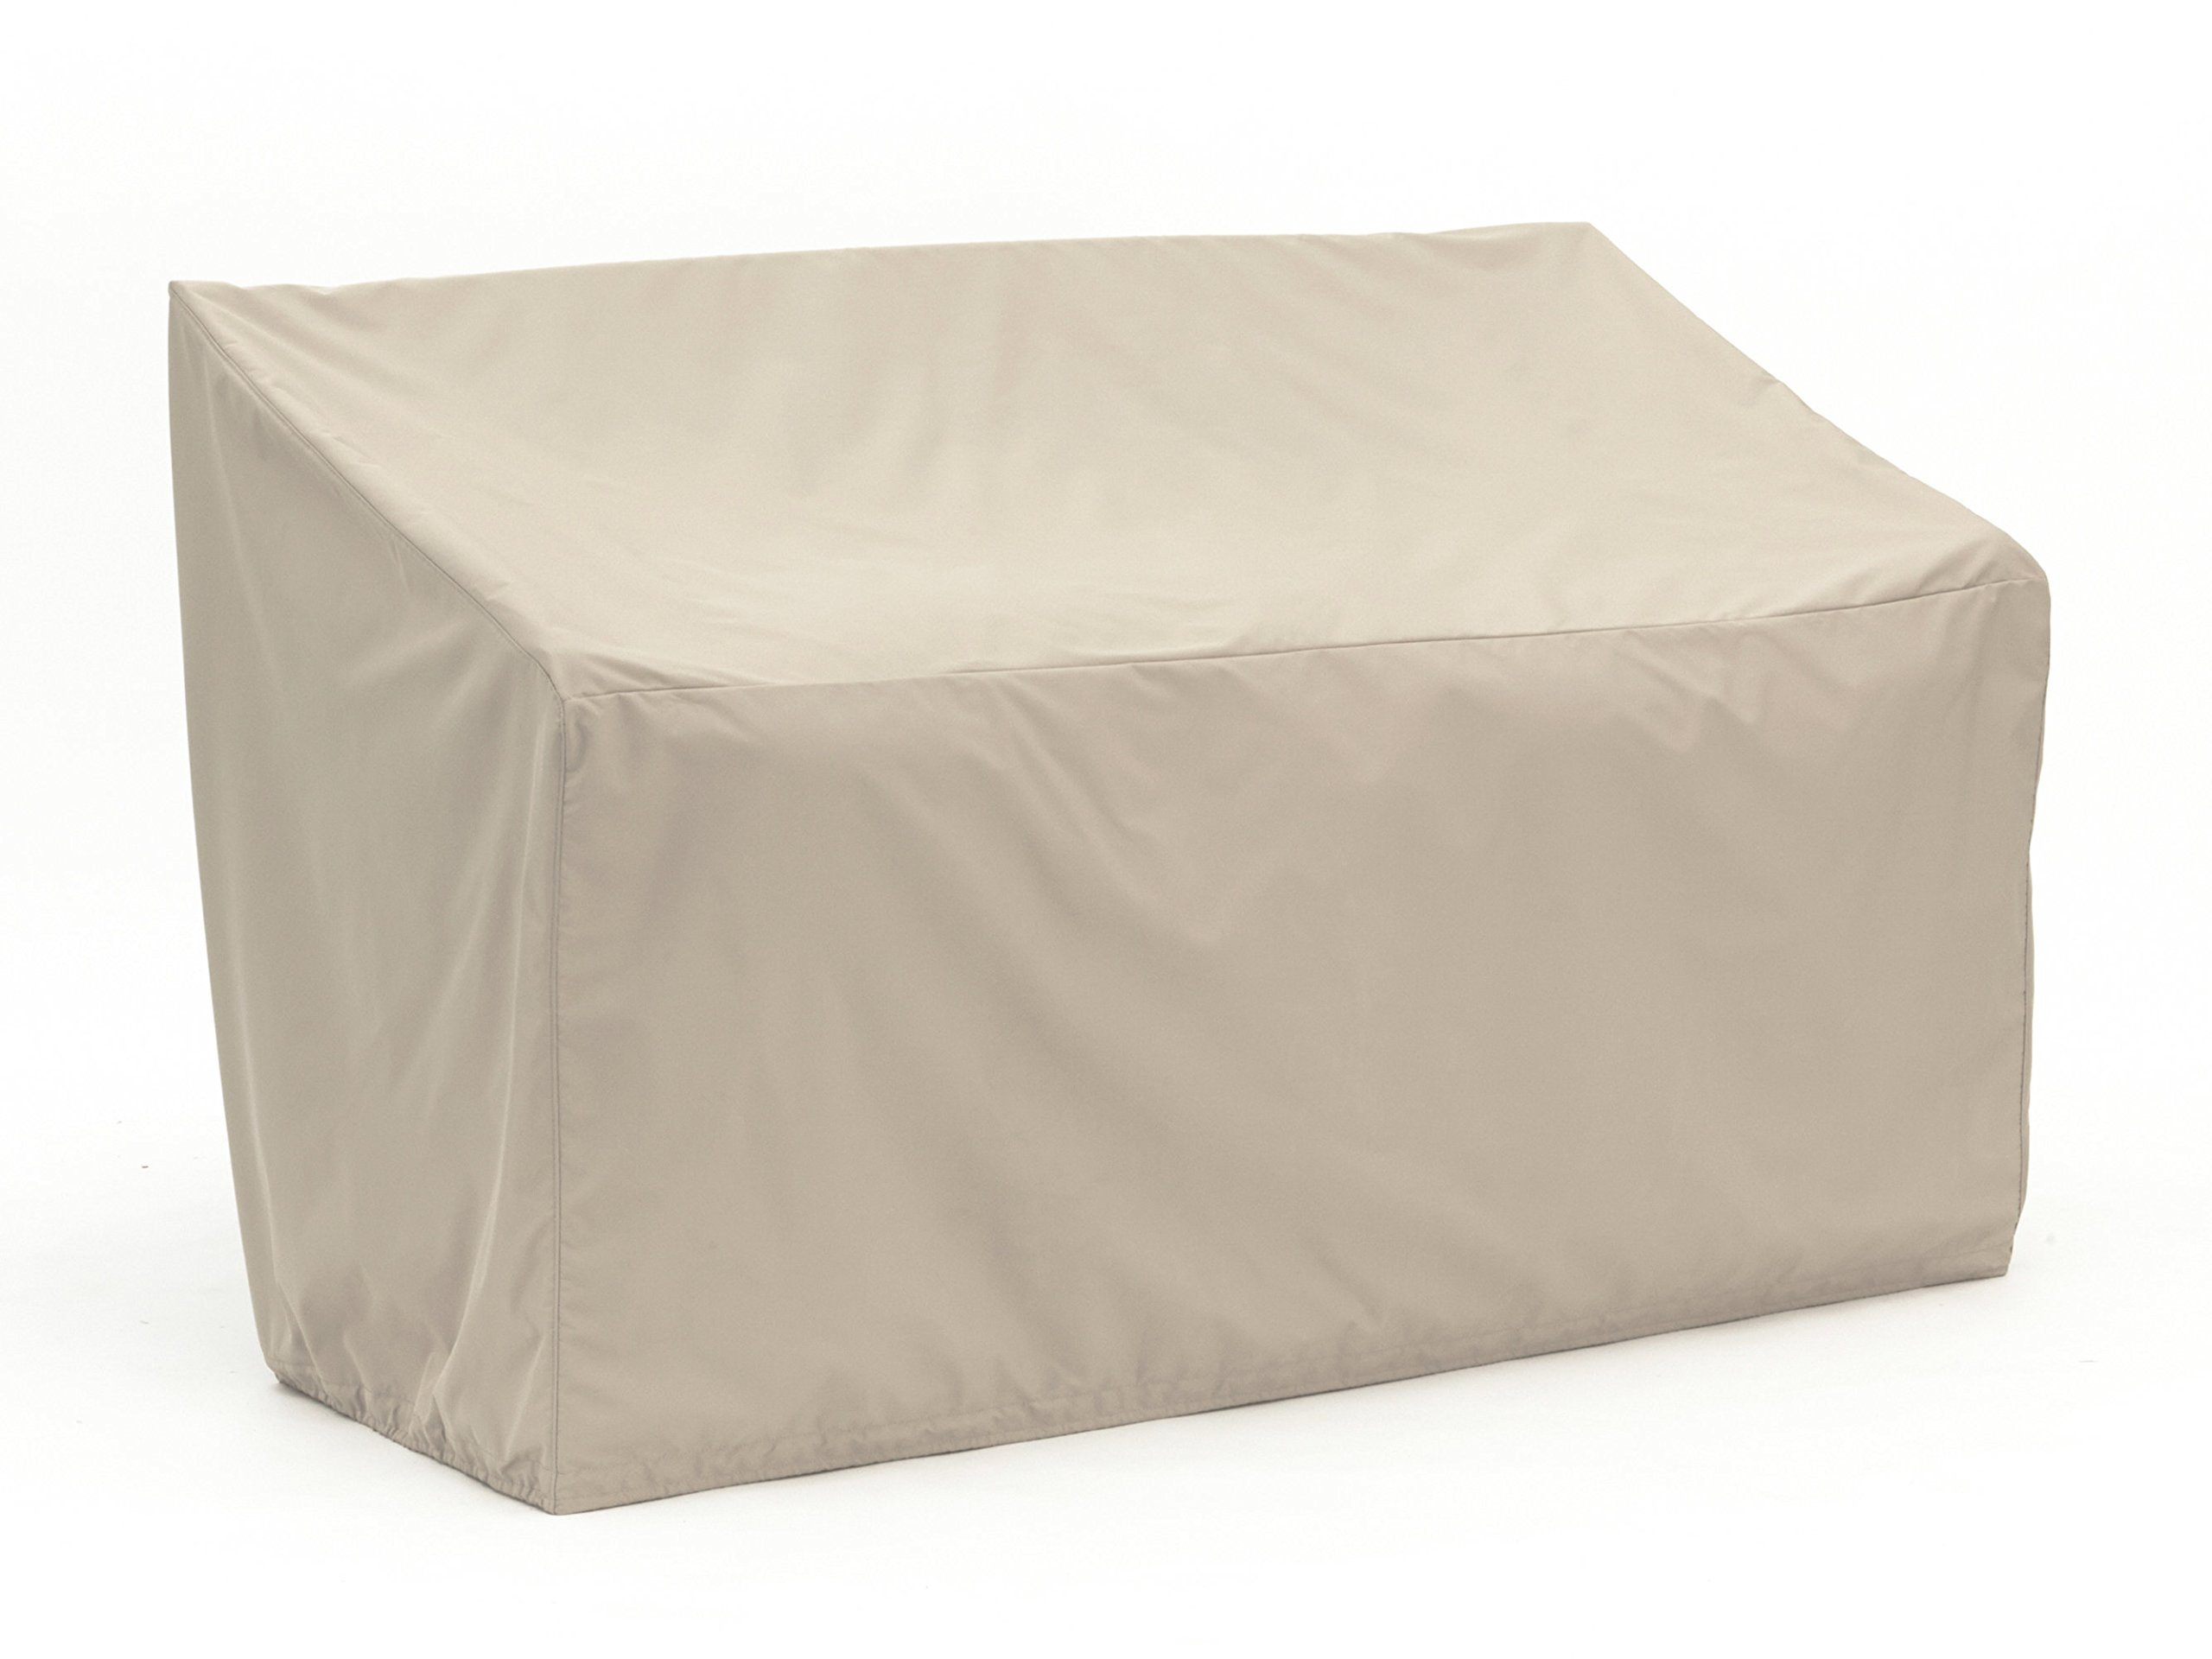 Covermates - Outdoor Patio Glider Cover - 52W x 32D x 34H - Elite Collection - 3 YR Warranty - Year Around Protection - Khaki